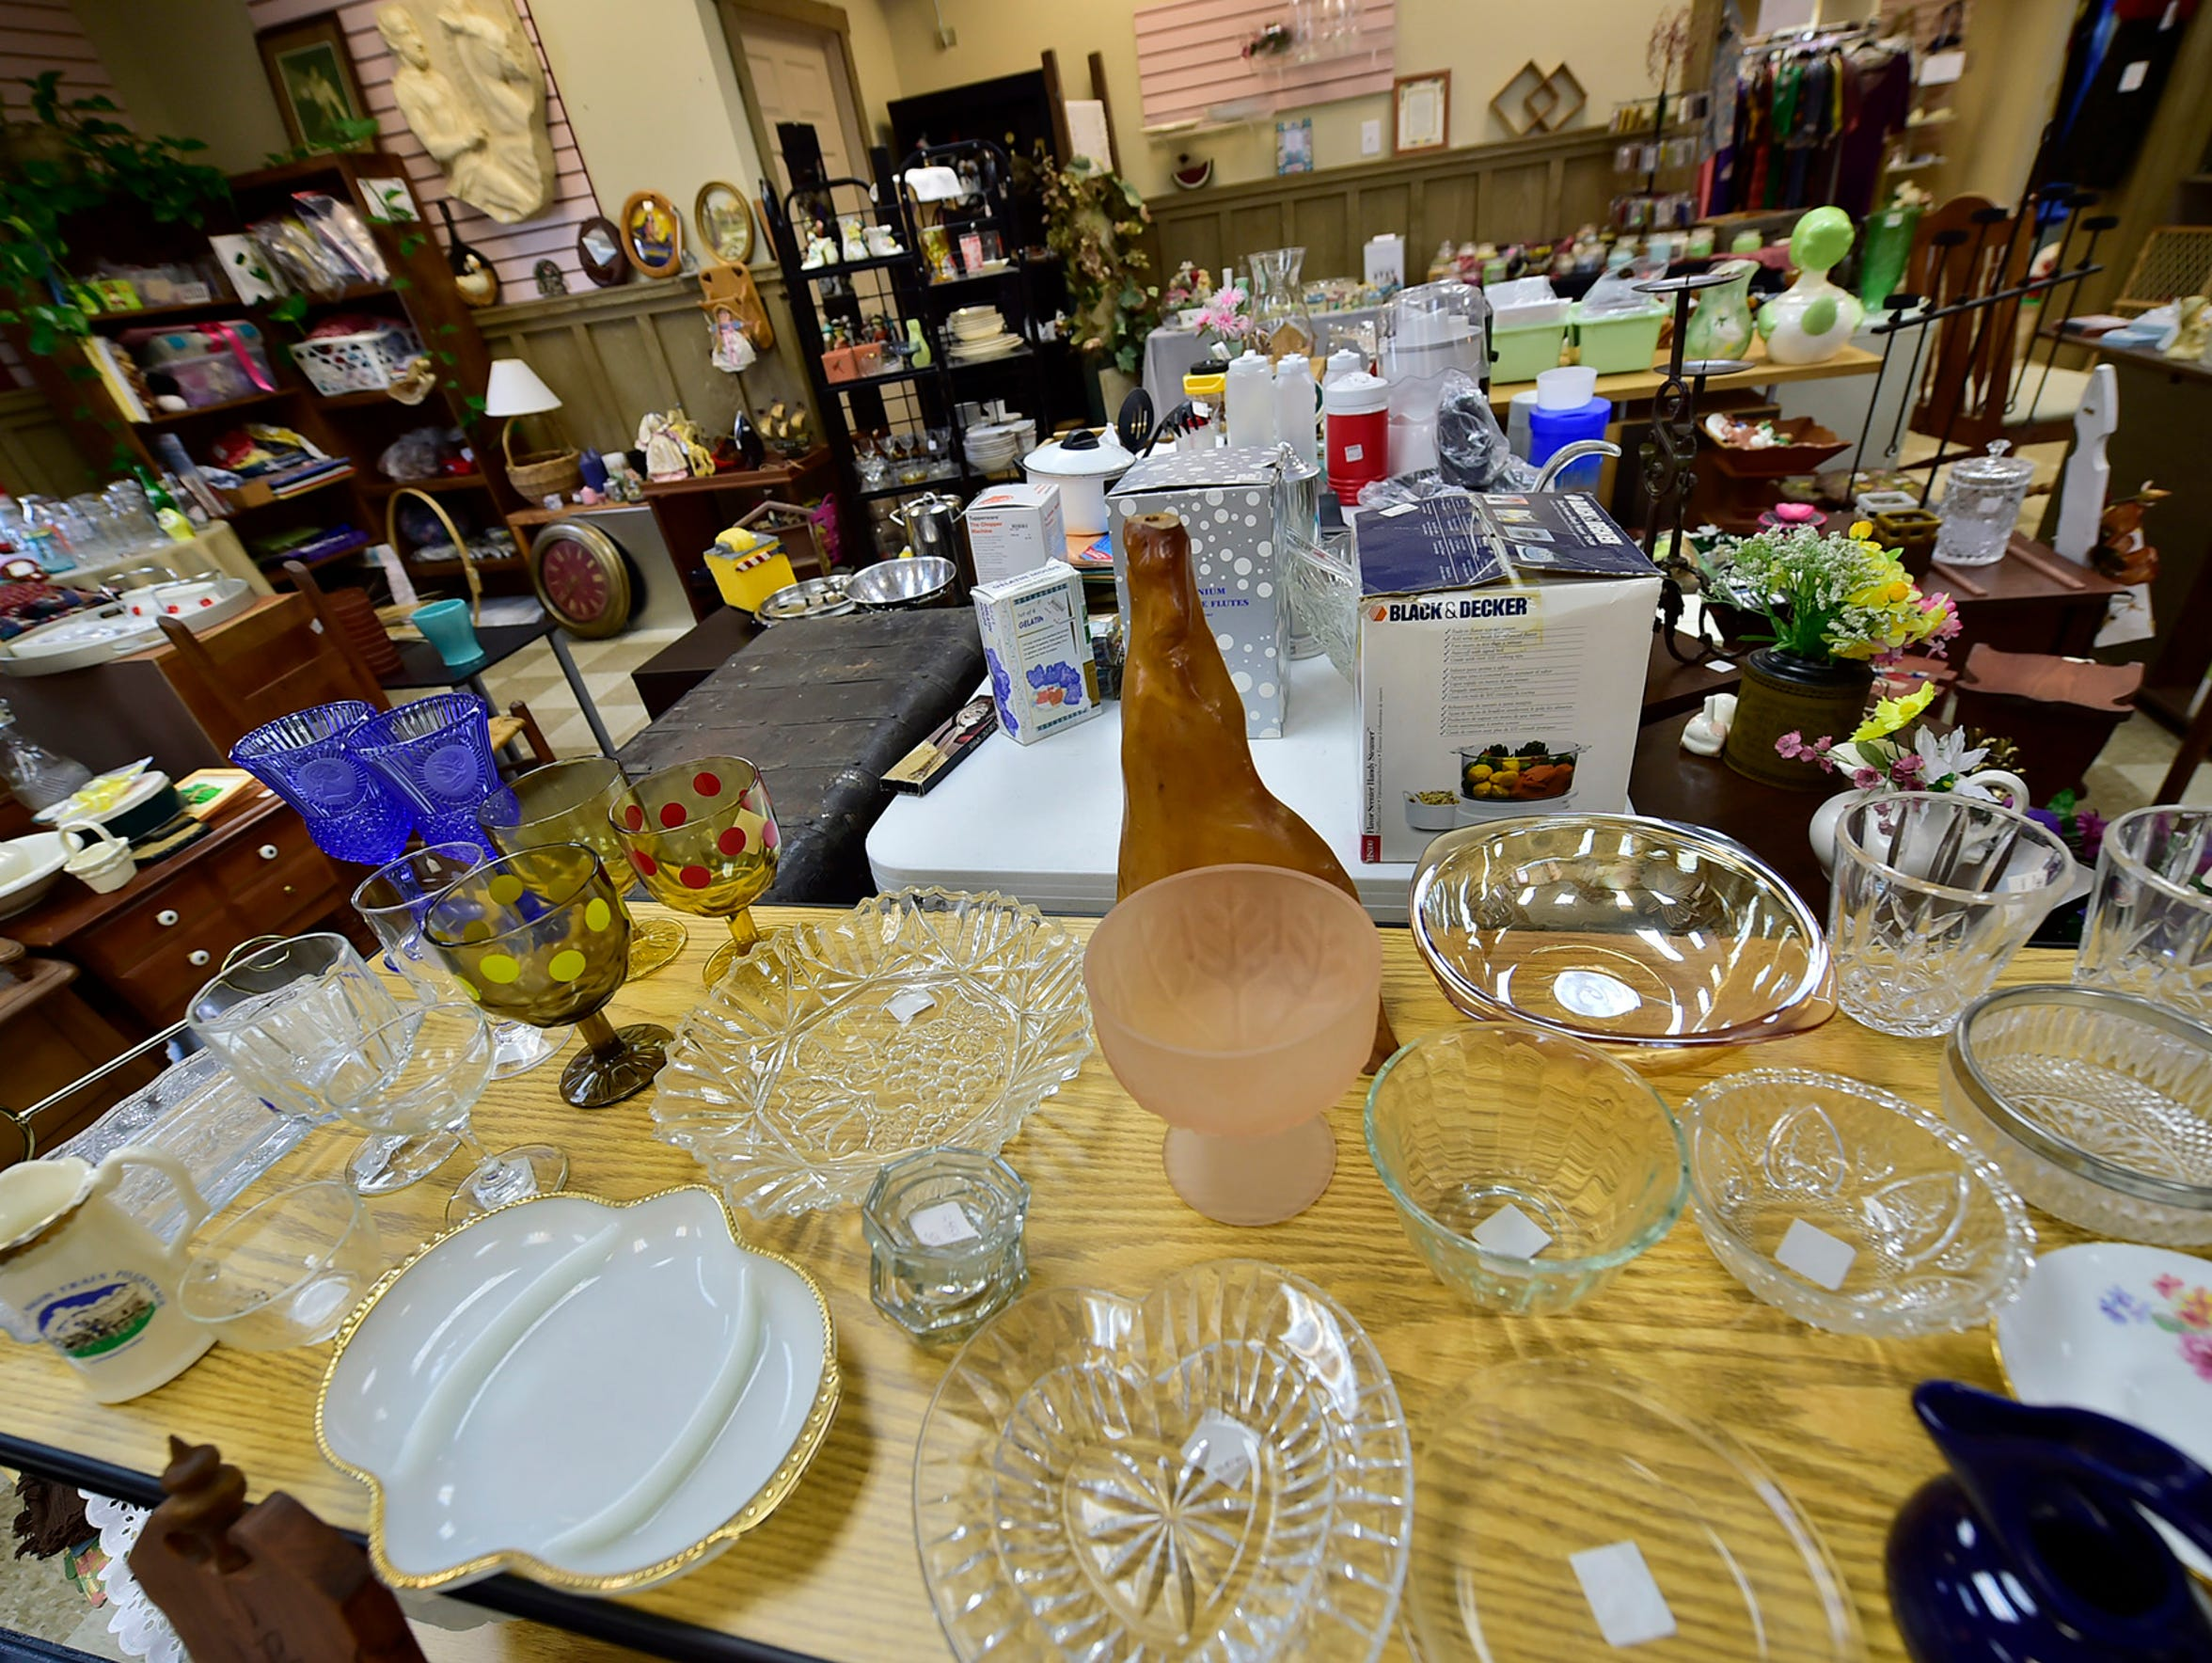 Upscale Consignment Shop is located at 24 W. Franklin